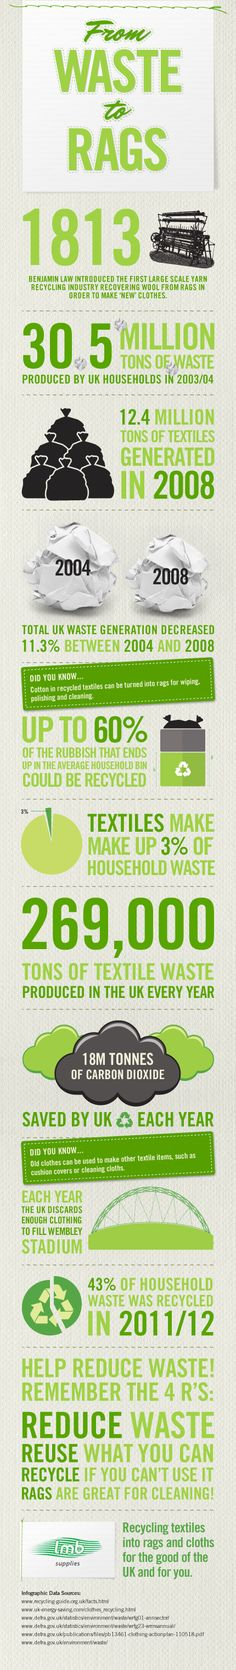 from-waste-to-rags-the-recycling-facts-infographic